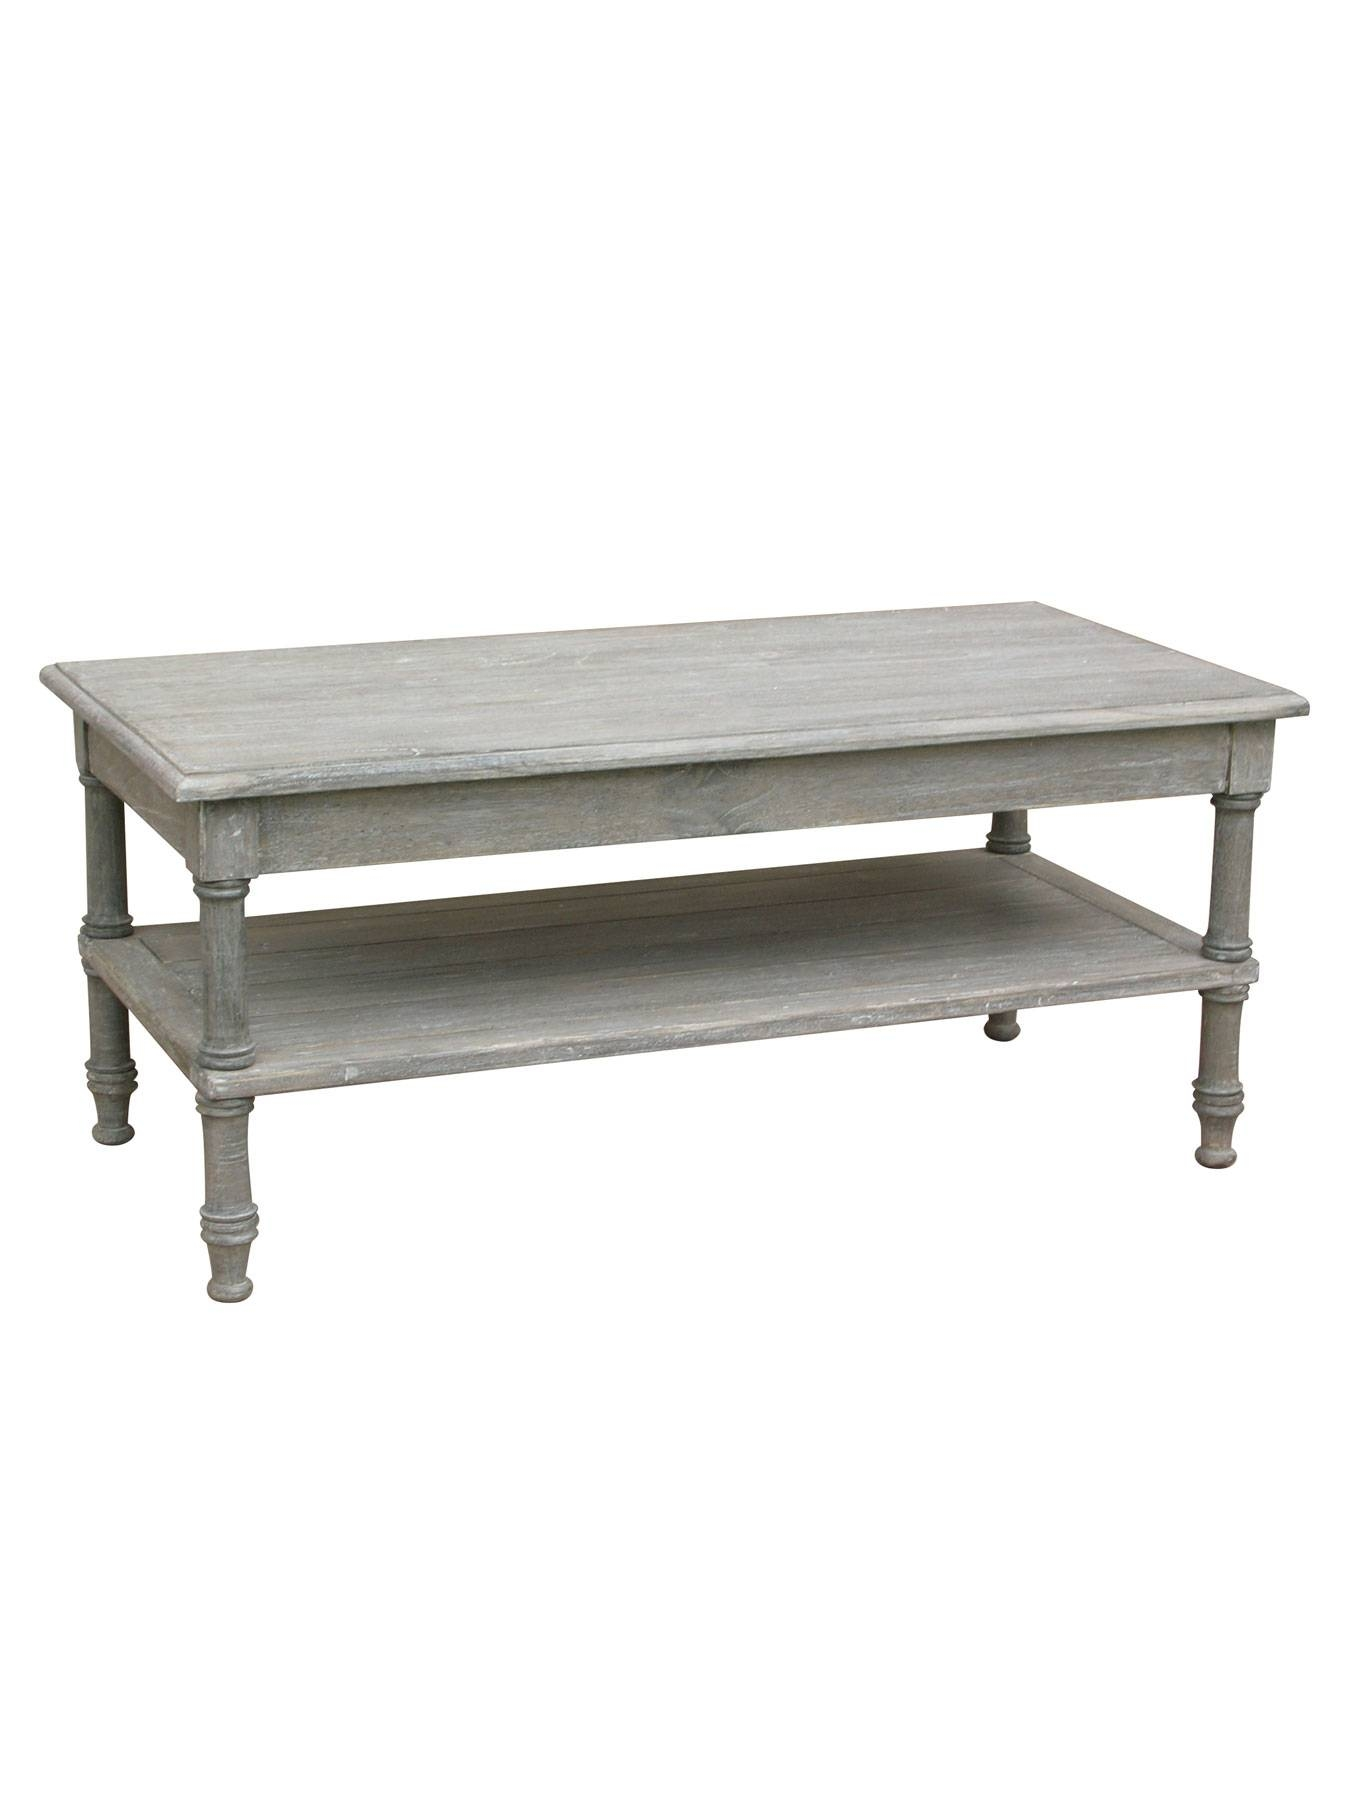 Colonial Coffee Table | Cottage Home® with regard to Colonial Coffee Tables (Image 9 of 30)